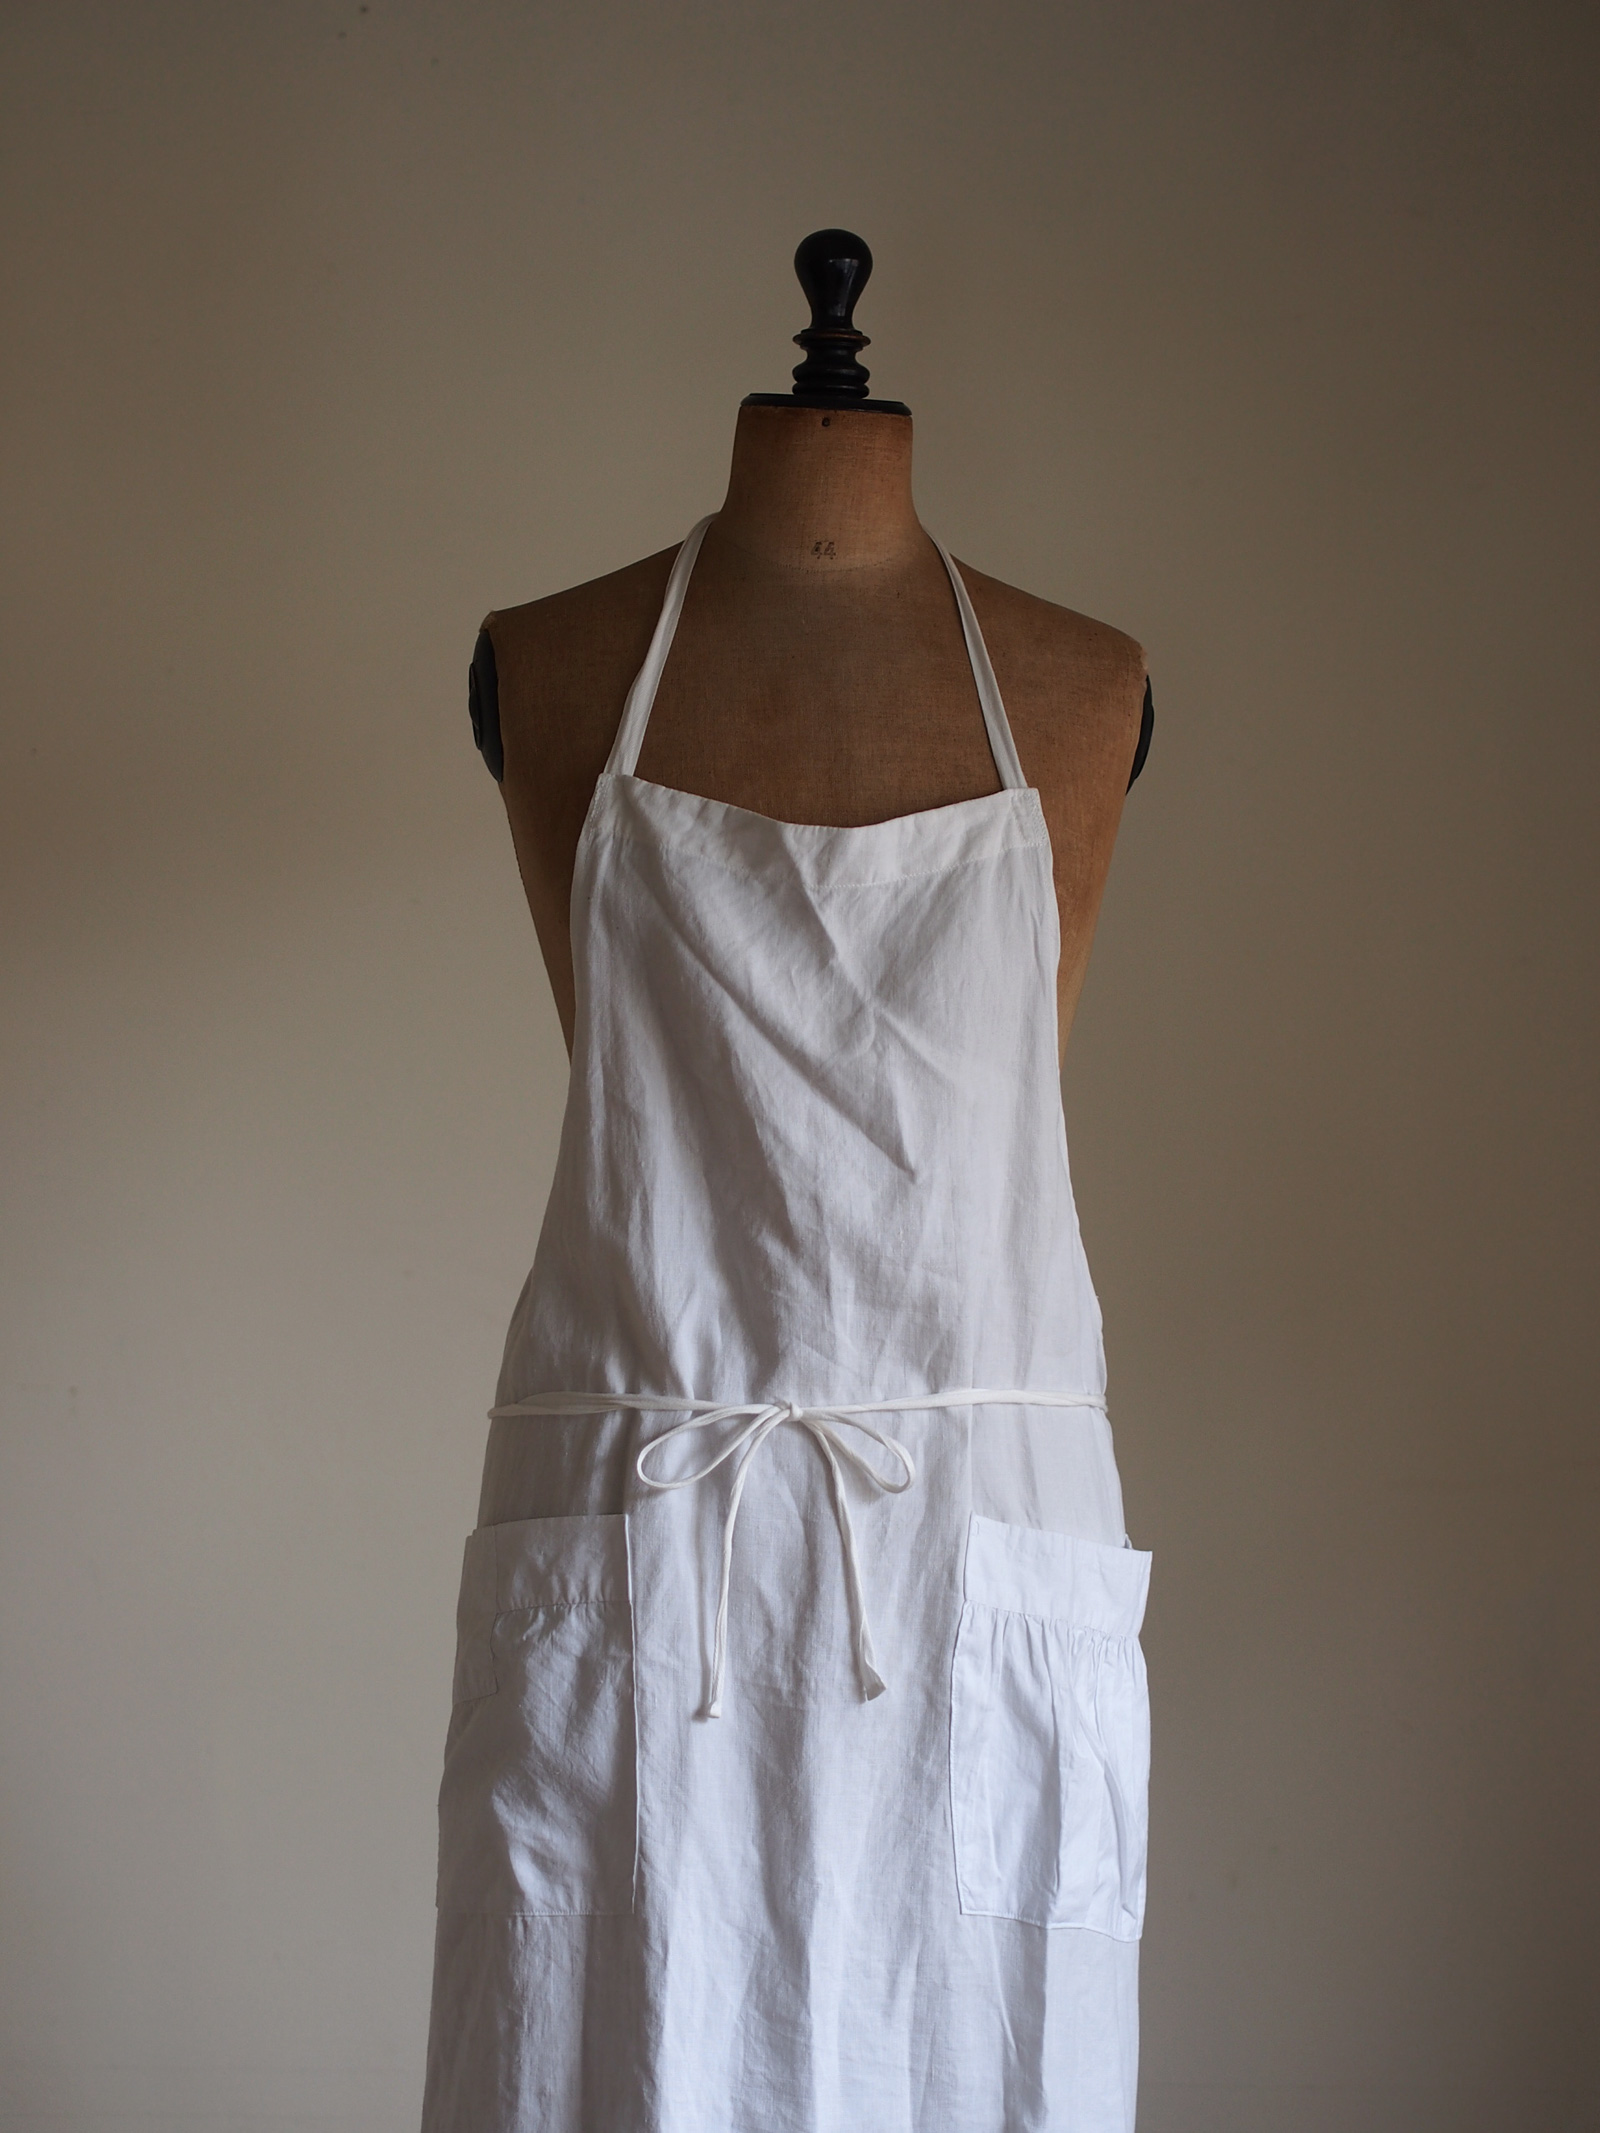 FIVE x UTO WH apron No.3